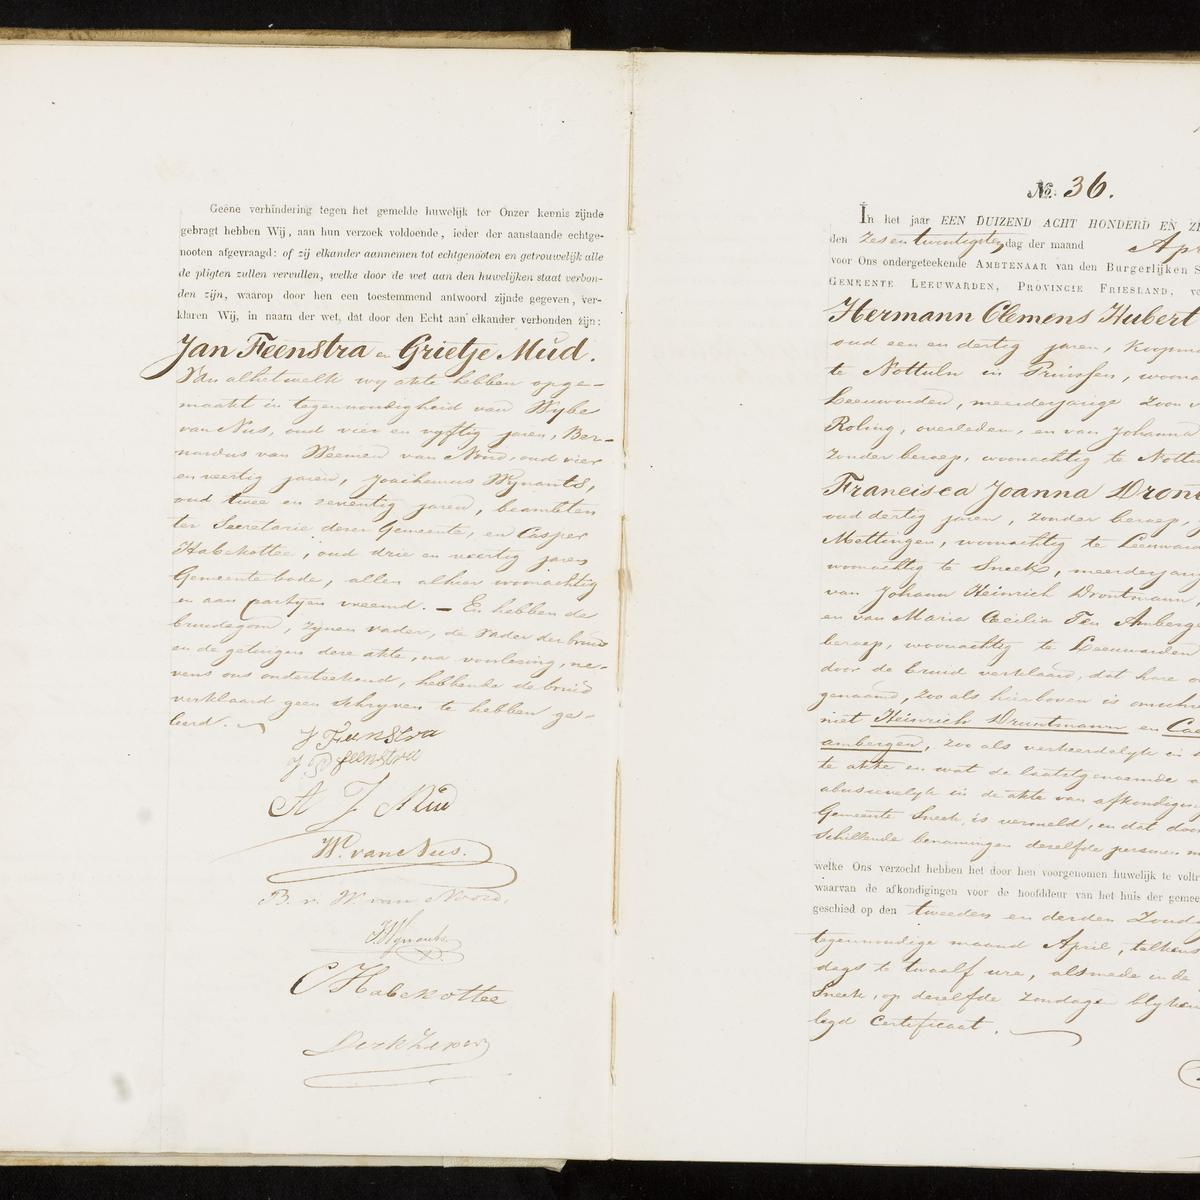 Civil registry of marriages, Leeuwarden, 1870, records 35-36